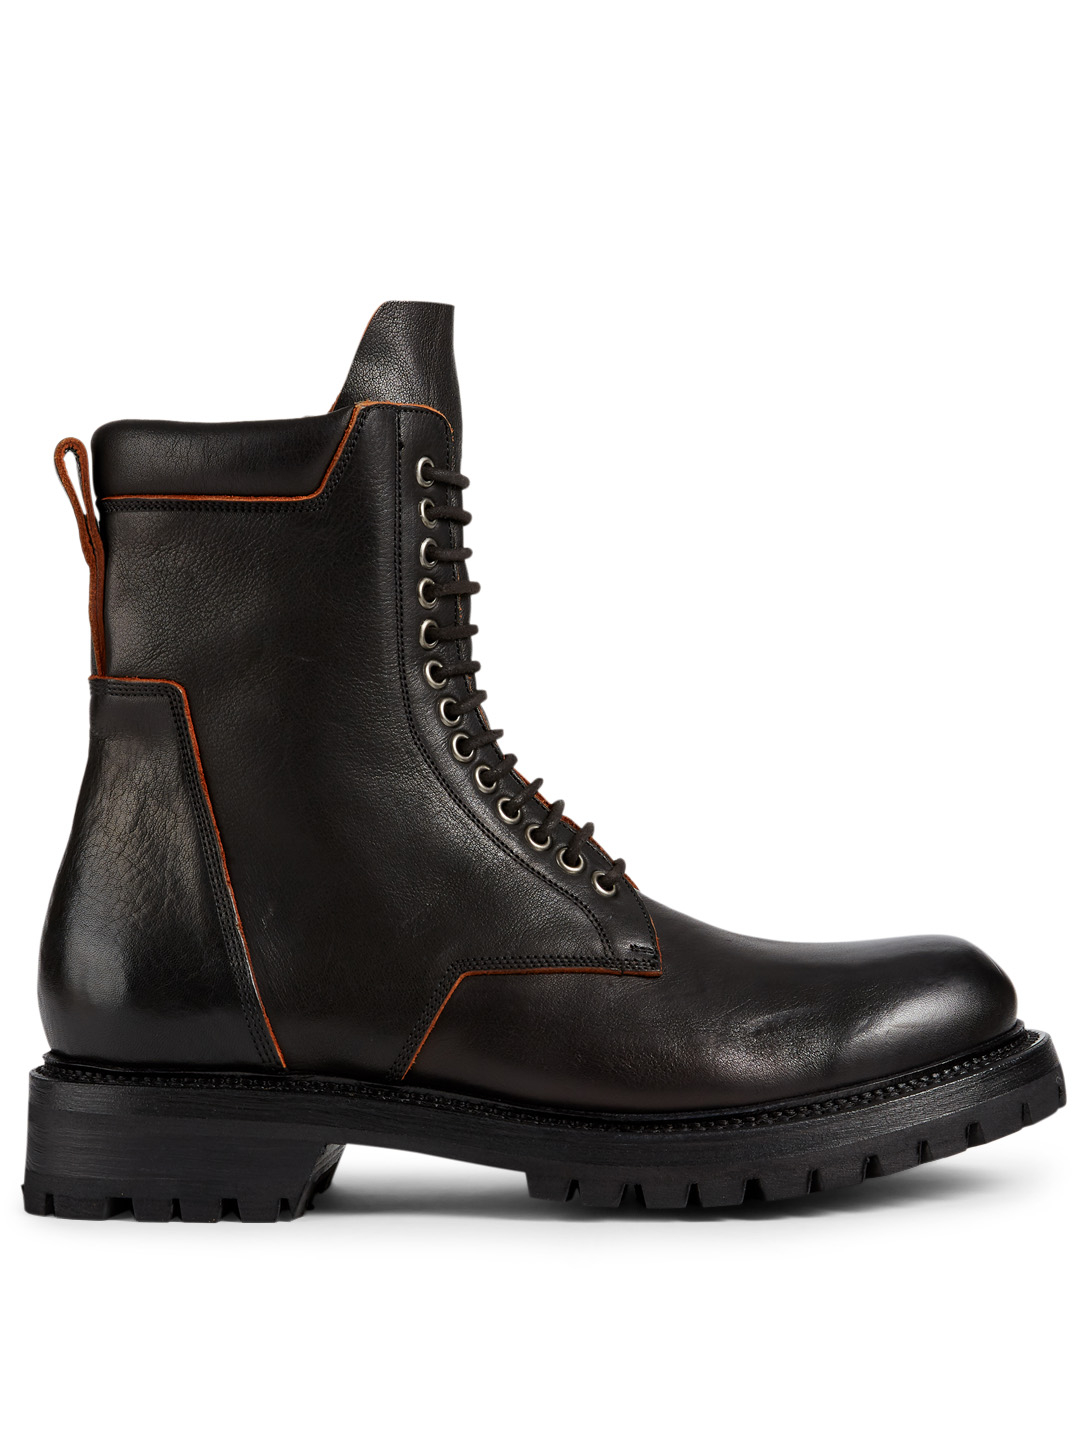 RICK OWENS Leather Army Boots Men's Black